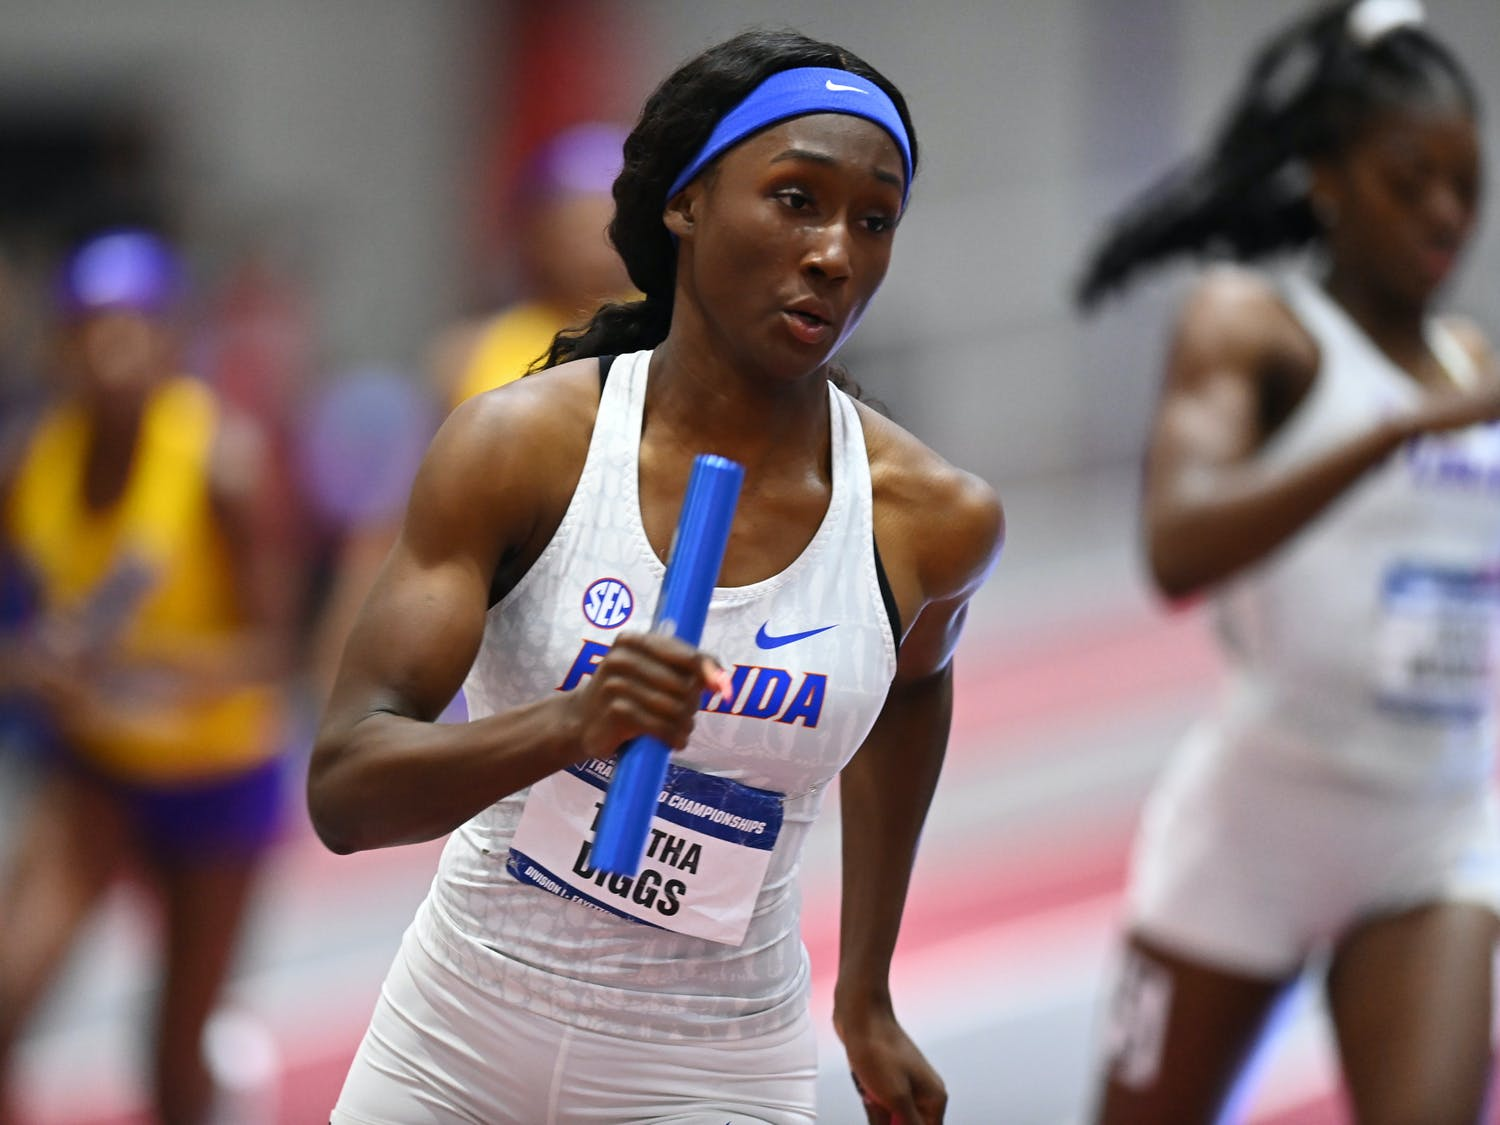 Florida's Talitha Diggs runs during the third day at the NCAA Indoor Championships on Saturday, March 13, 2021 at Randal Tyson Track Center in Fayetteville, Ark. / UAA Communications photo by NCAA Images